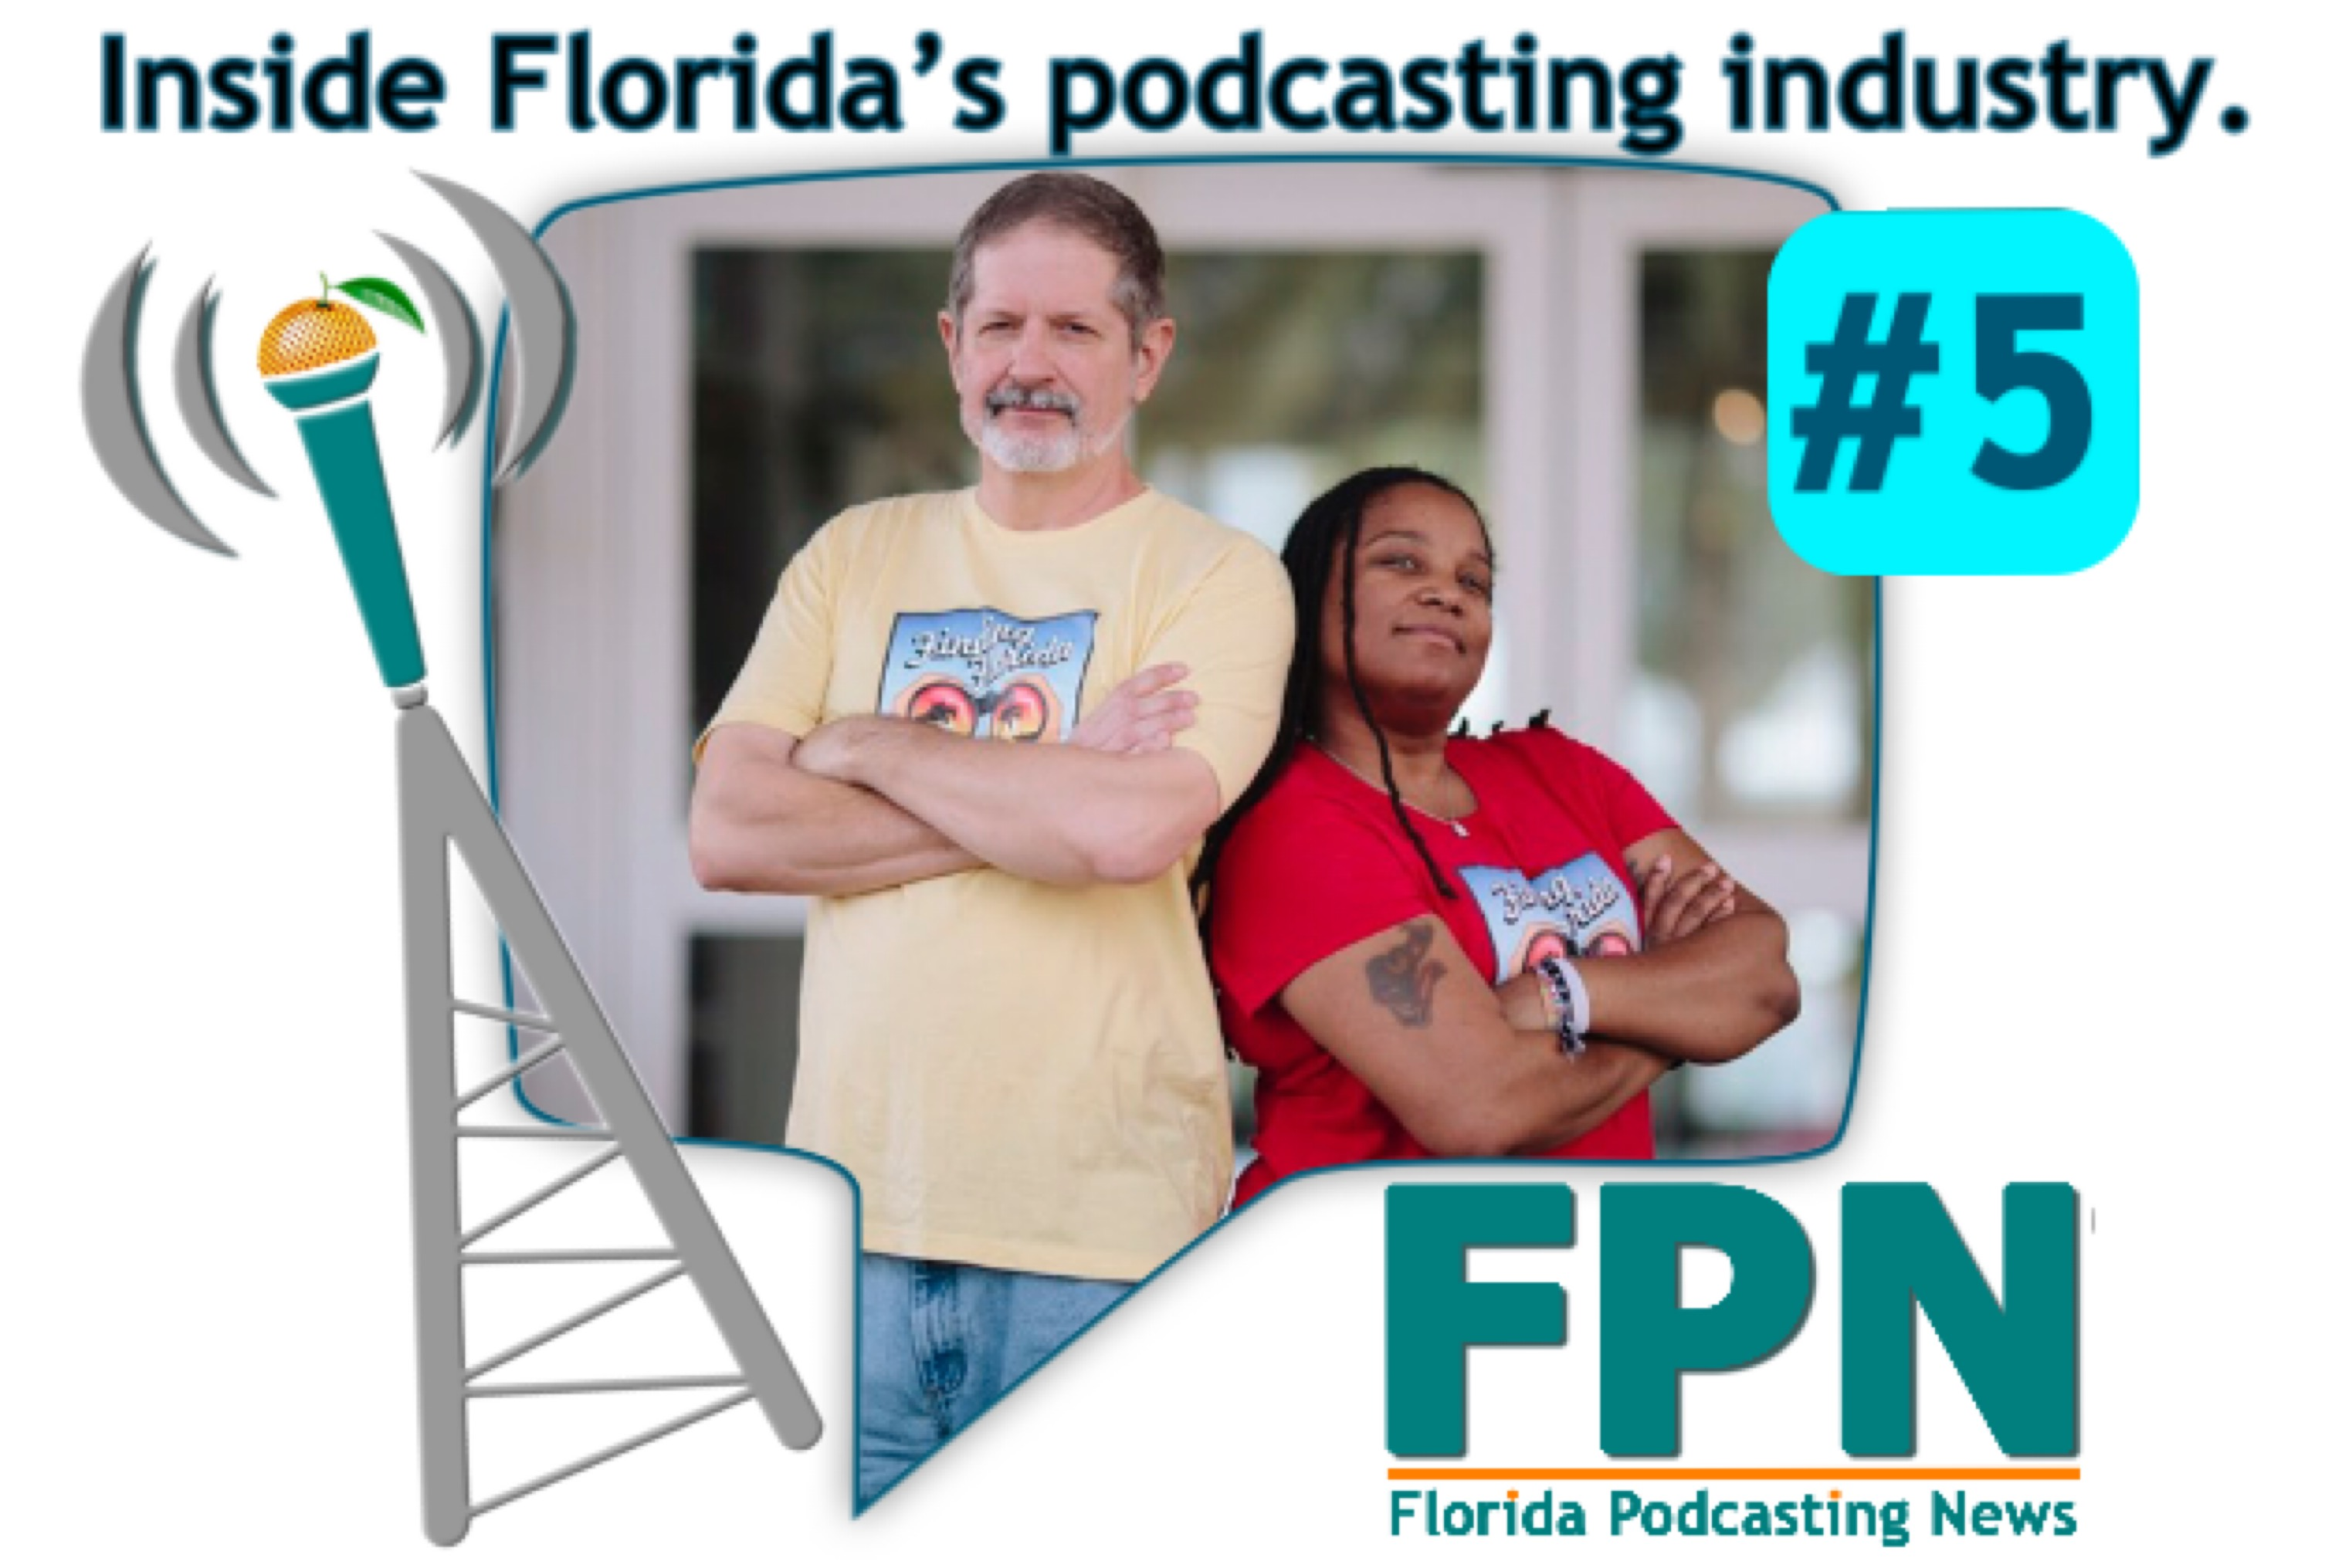 FL Podcasting News – Episode 5: Sports and Faith Podcasting